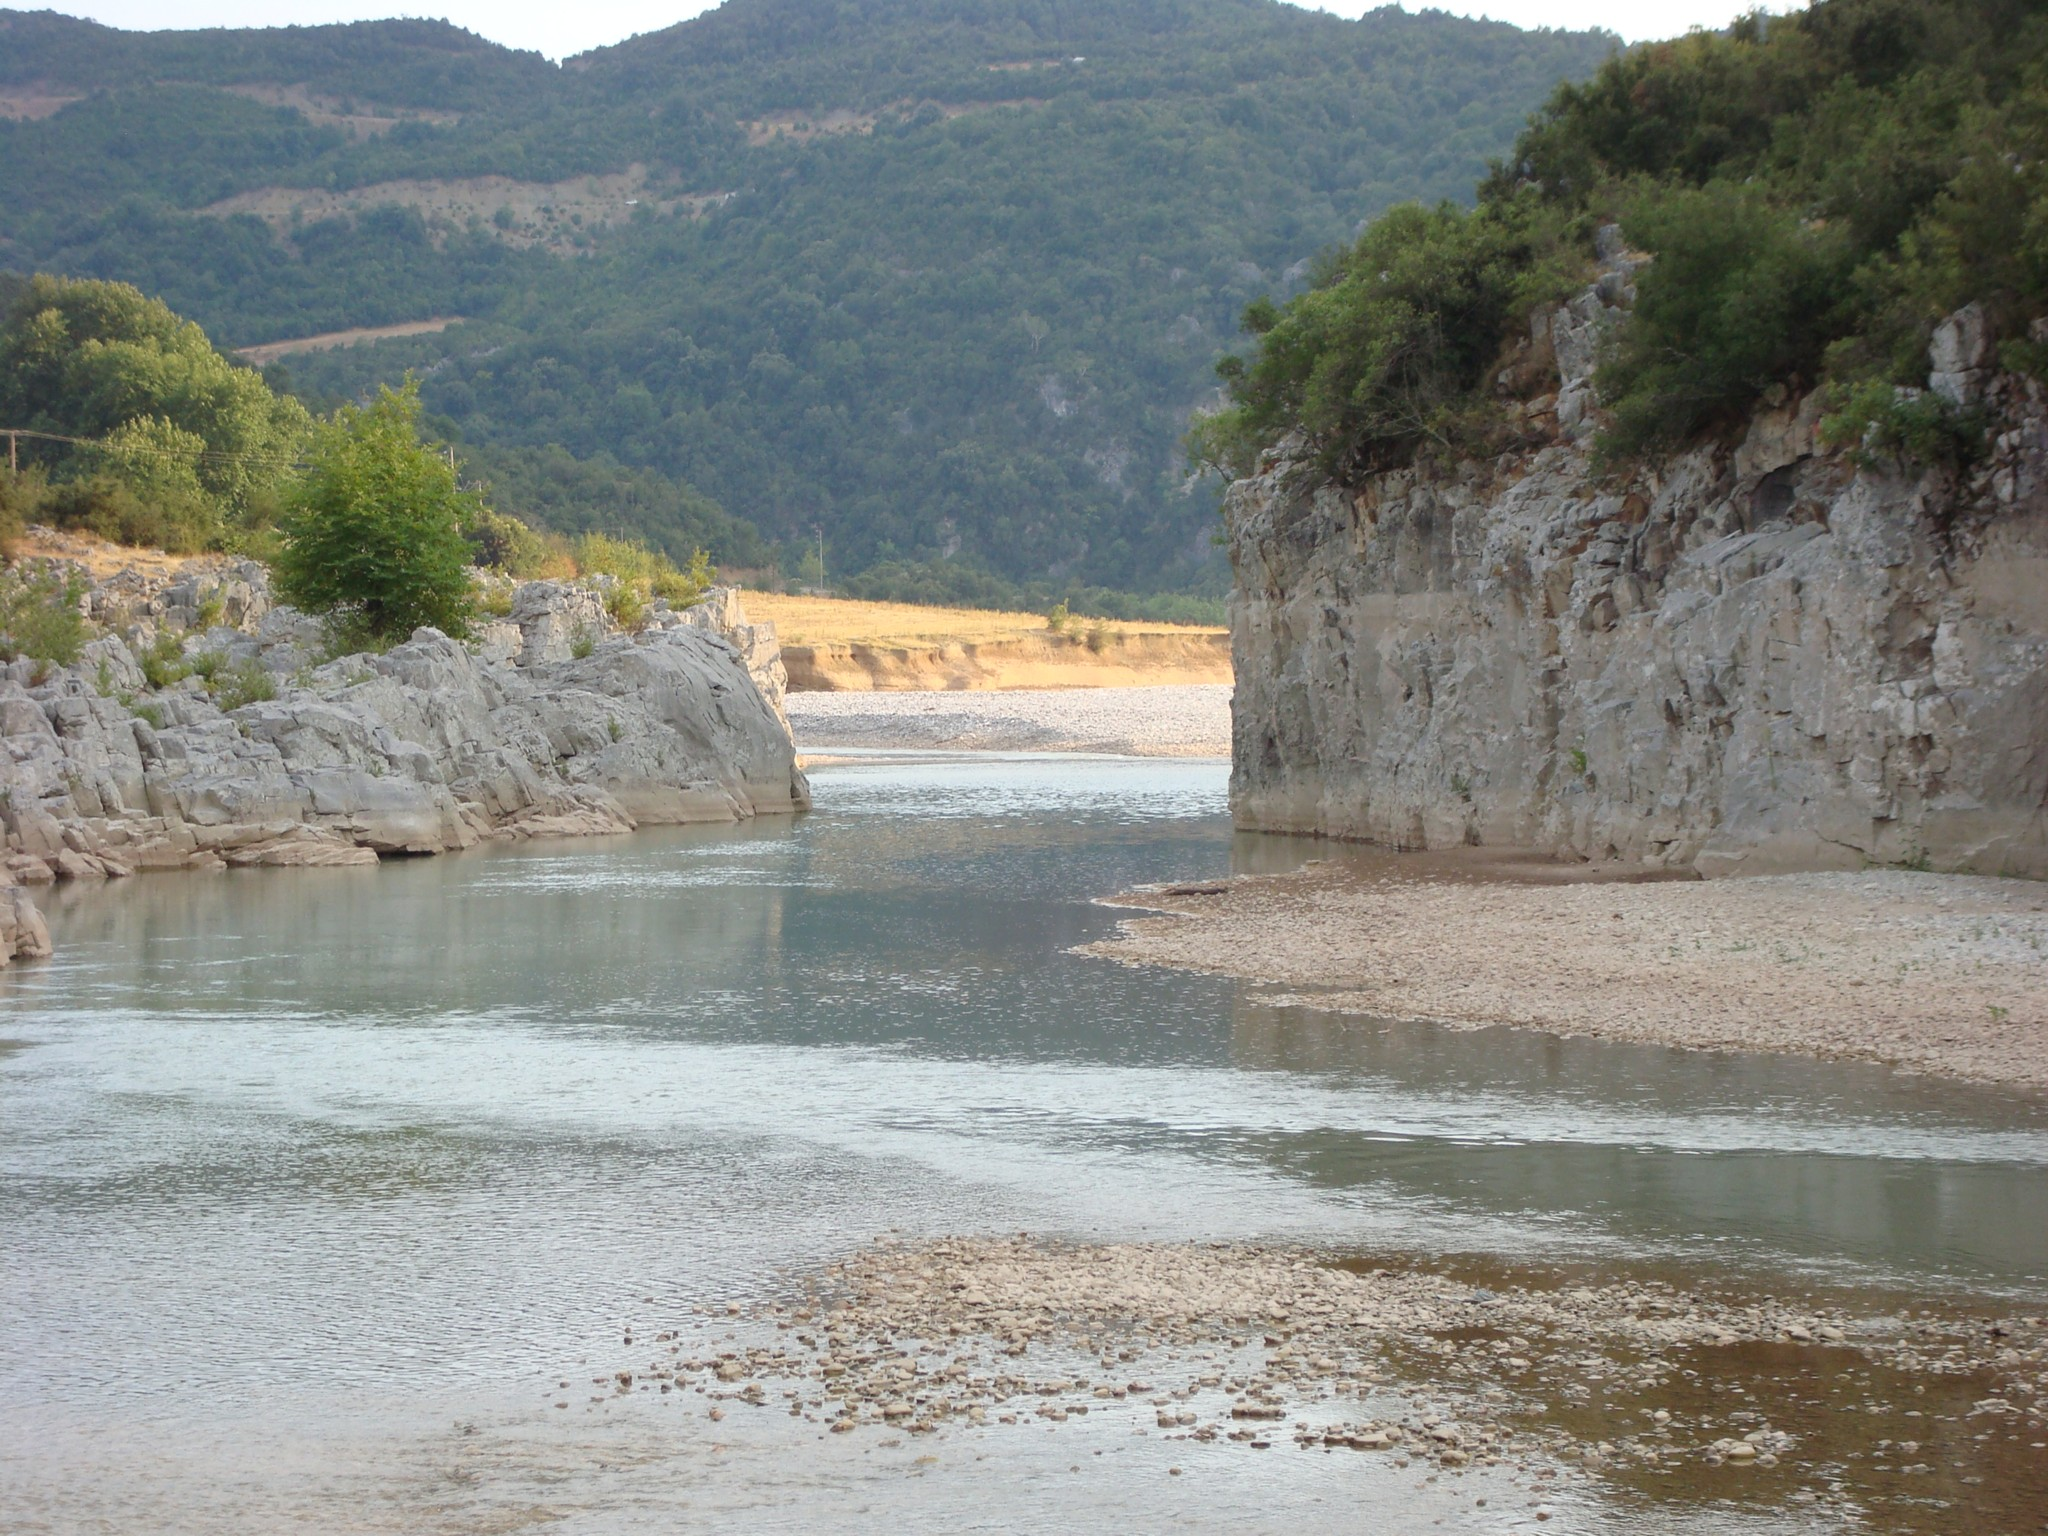 File:Acheloos river narrows 02.jpg